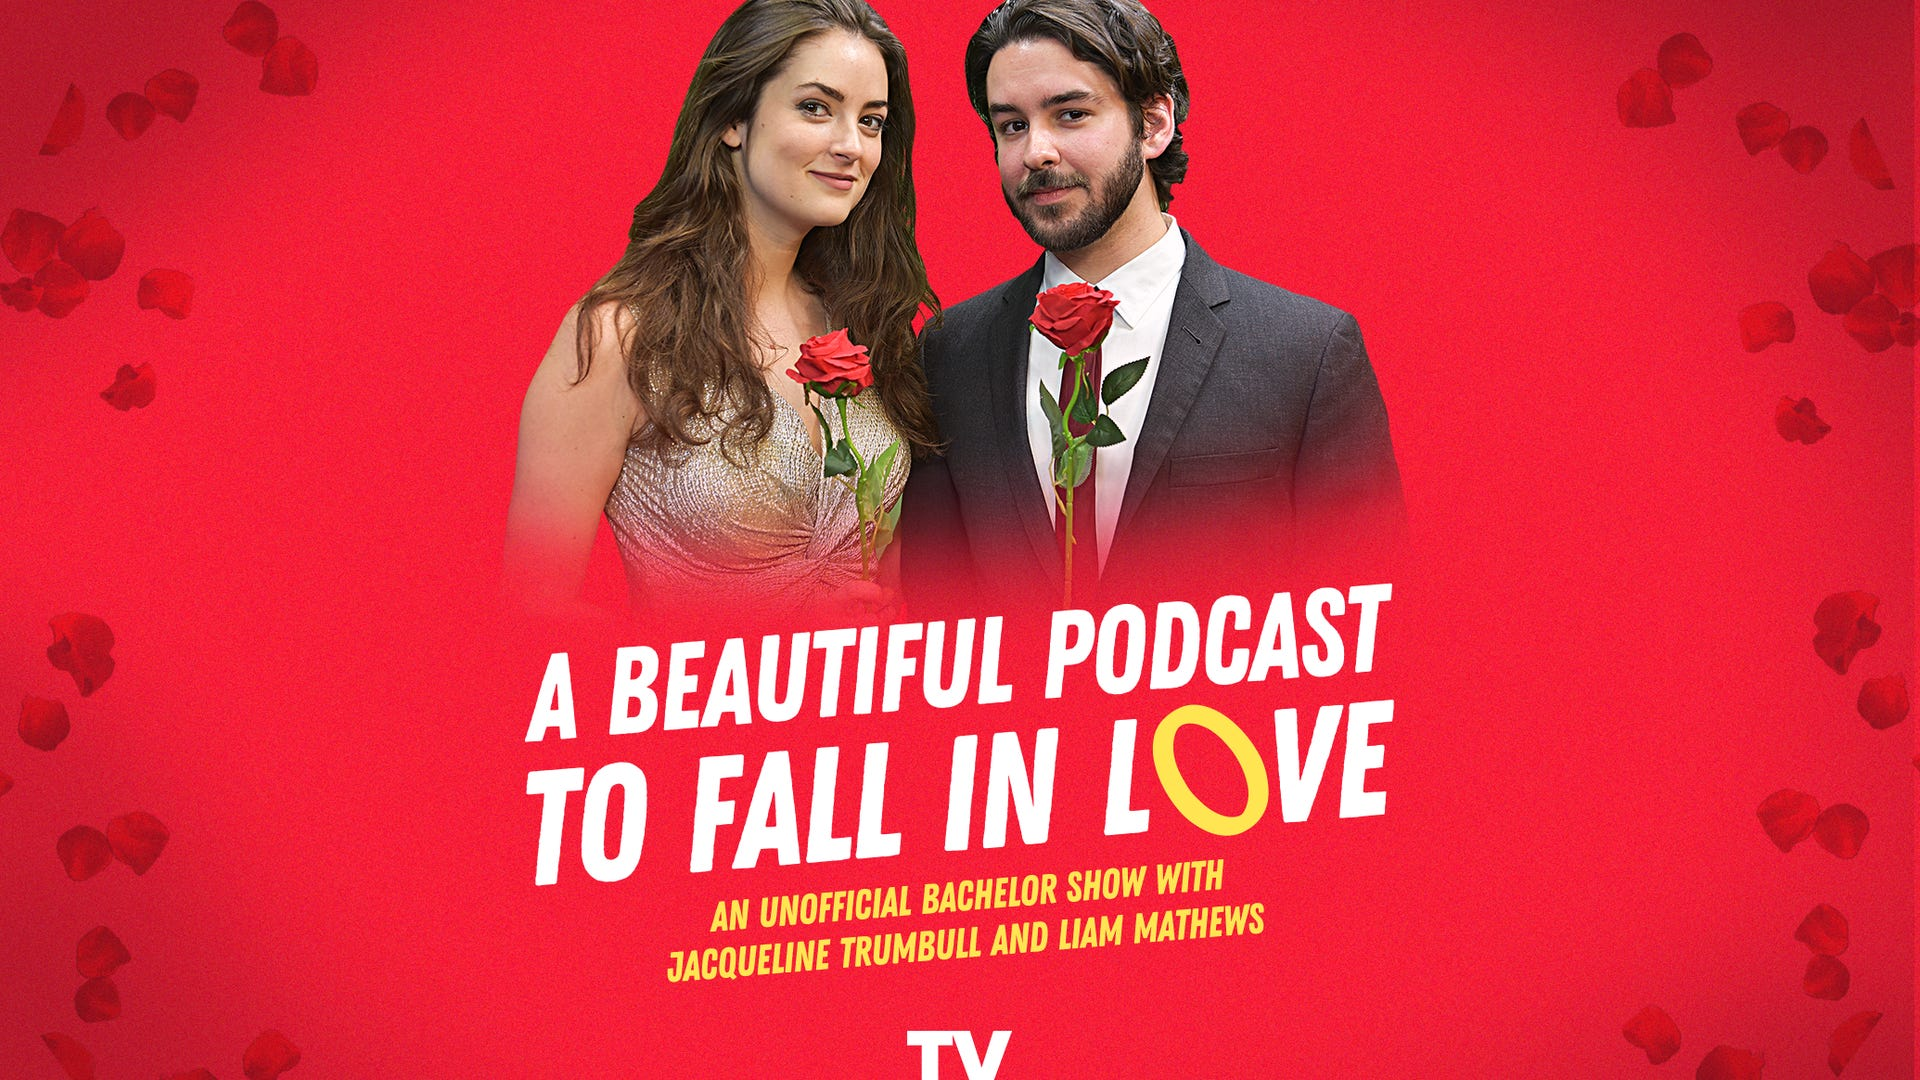 beautifulpodcast2070x1380.png